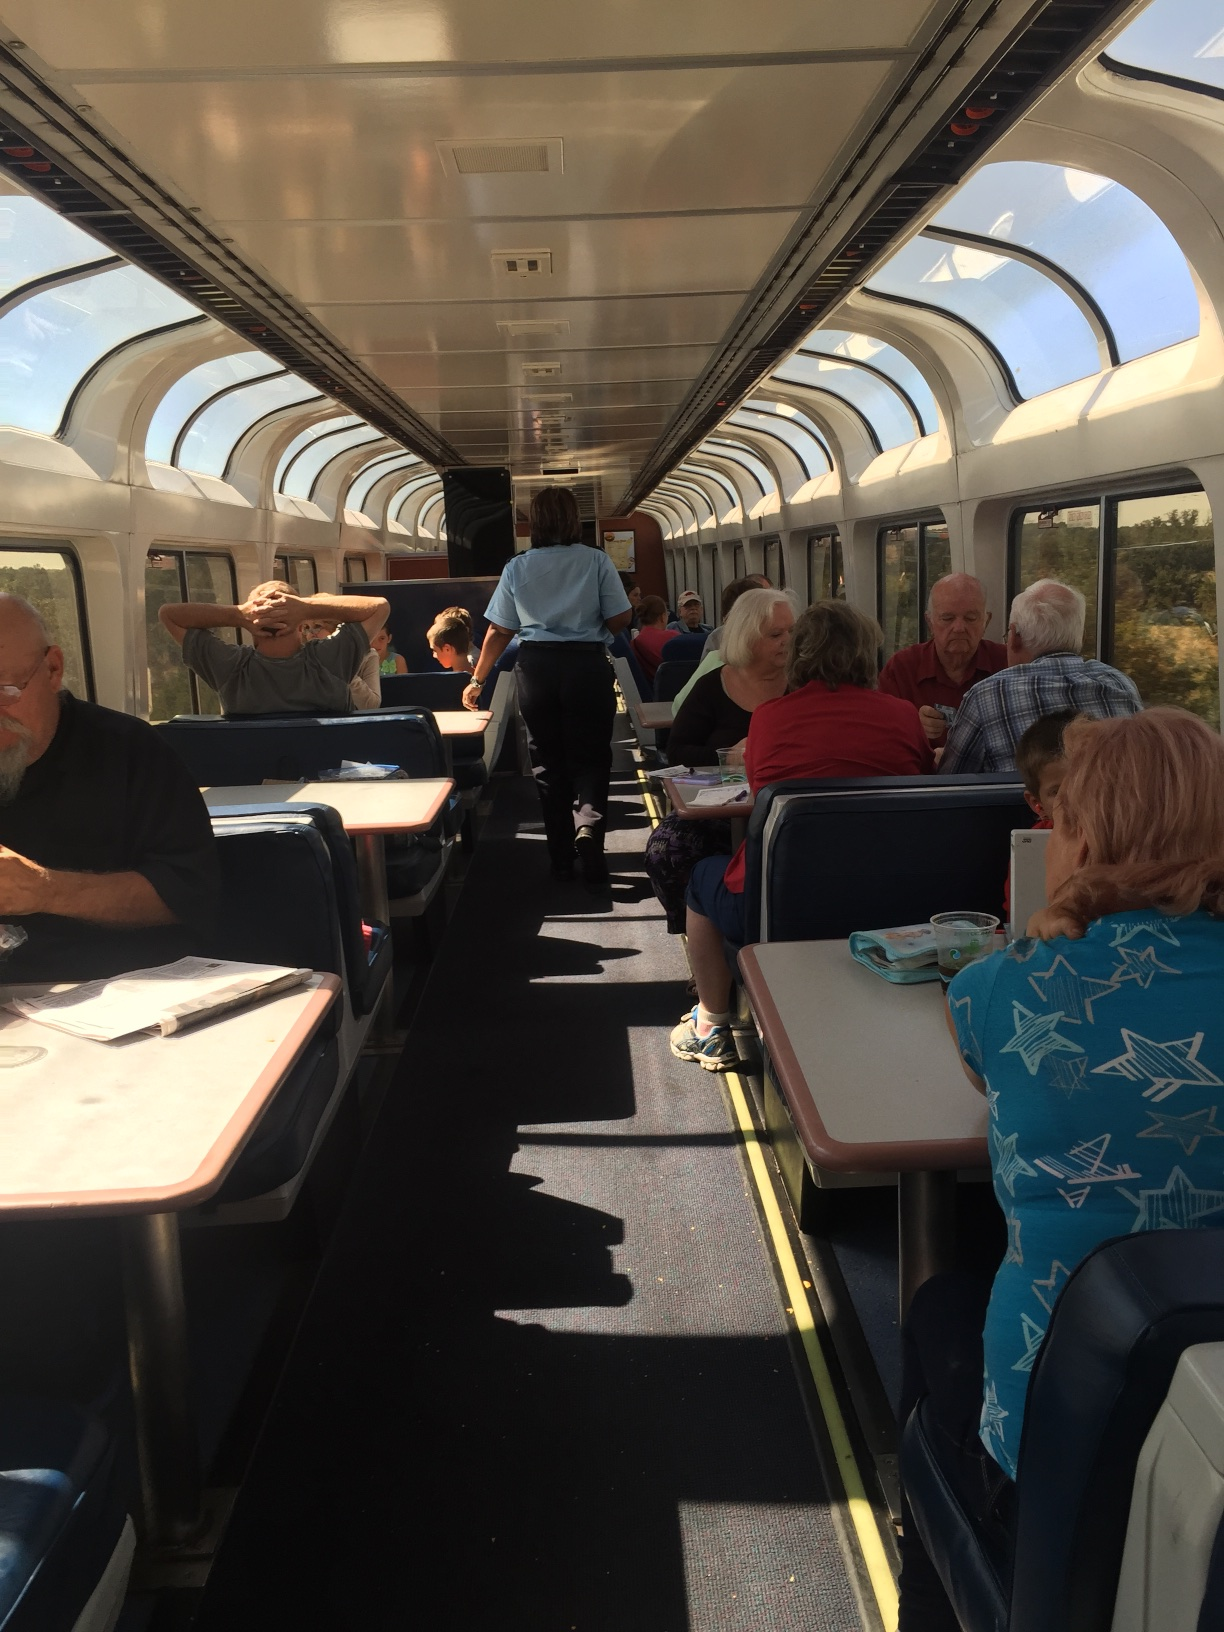 The Dining Car.